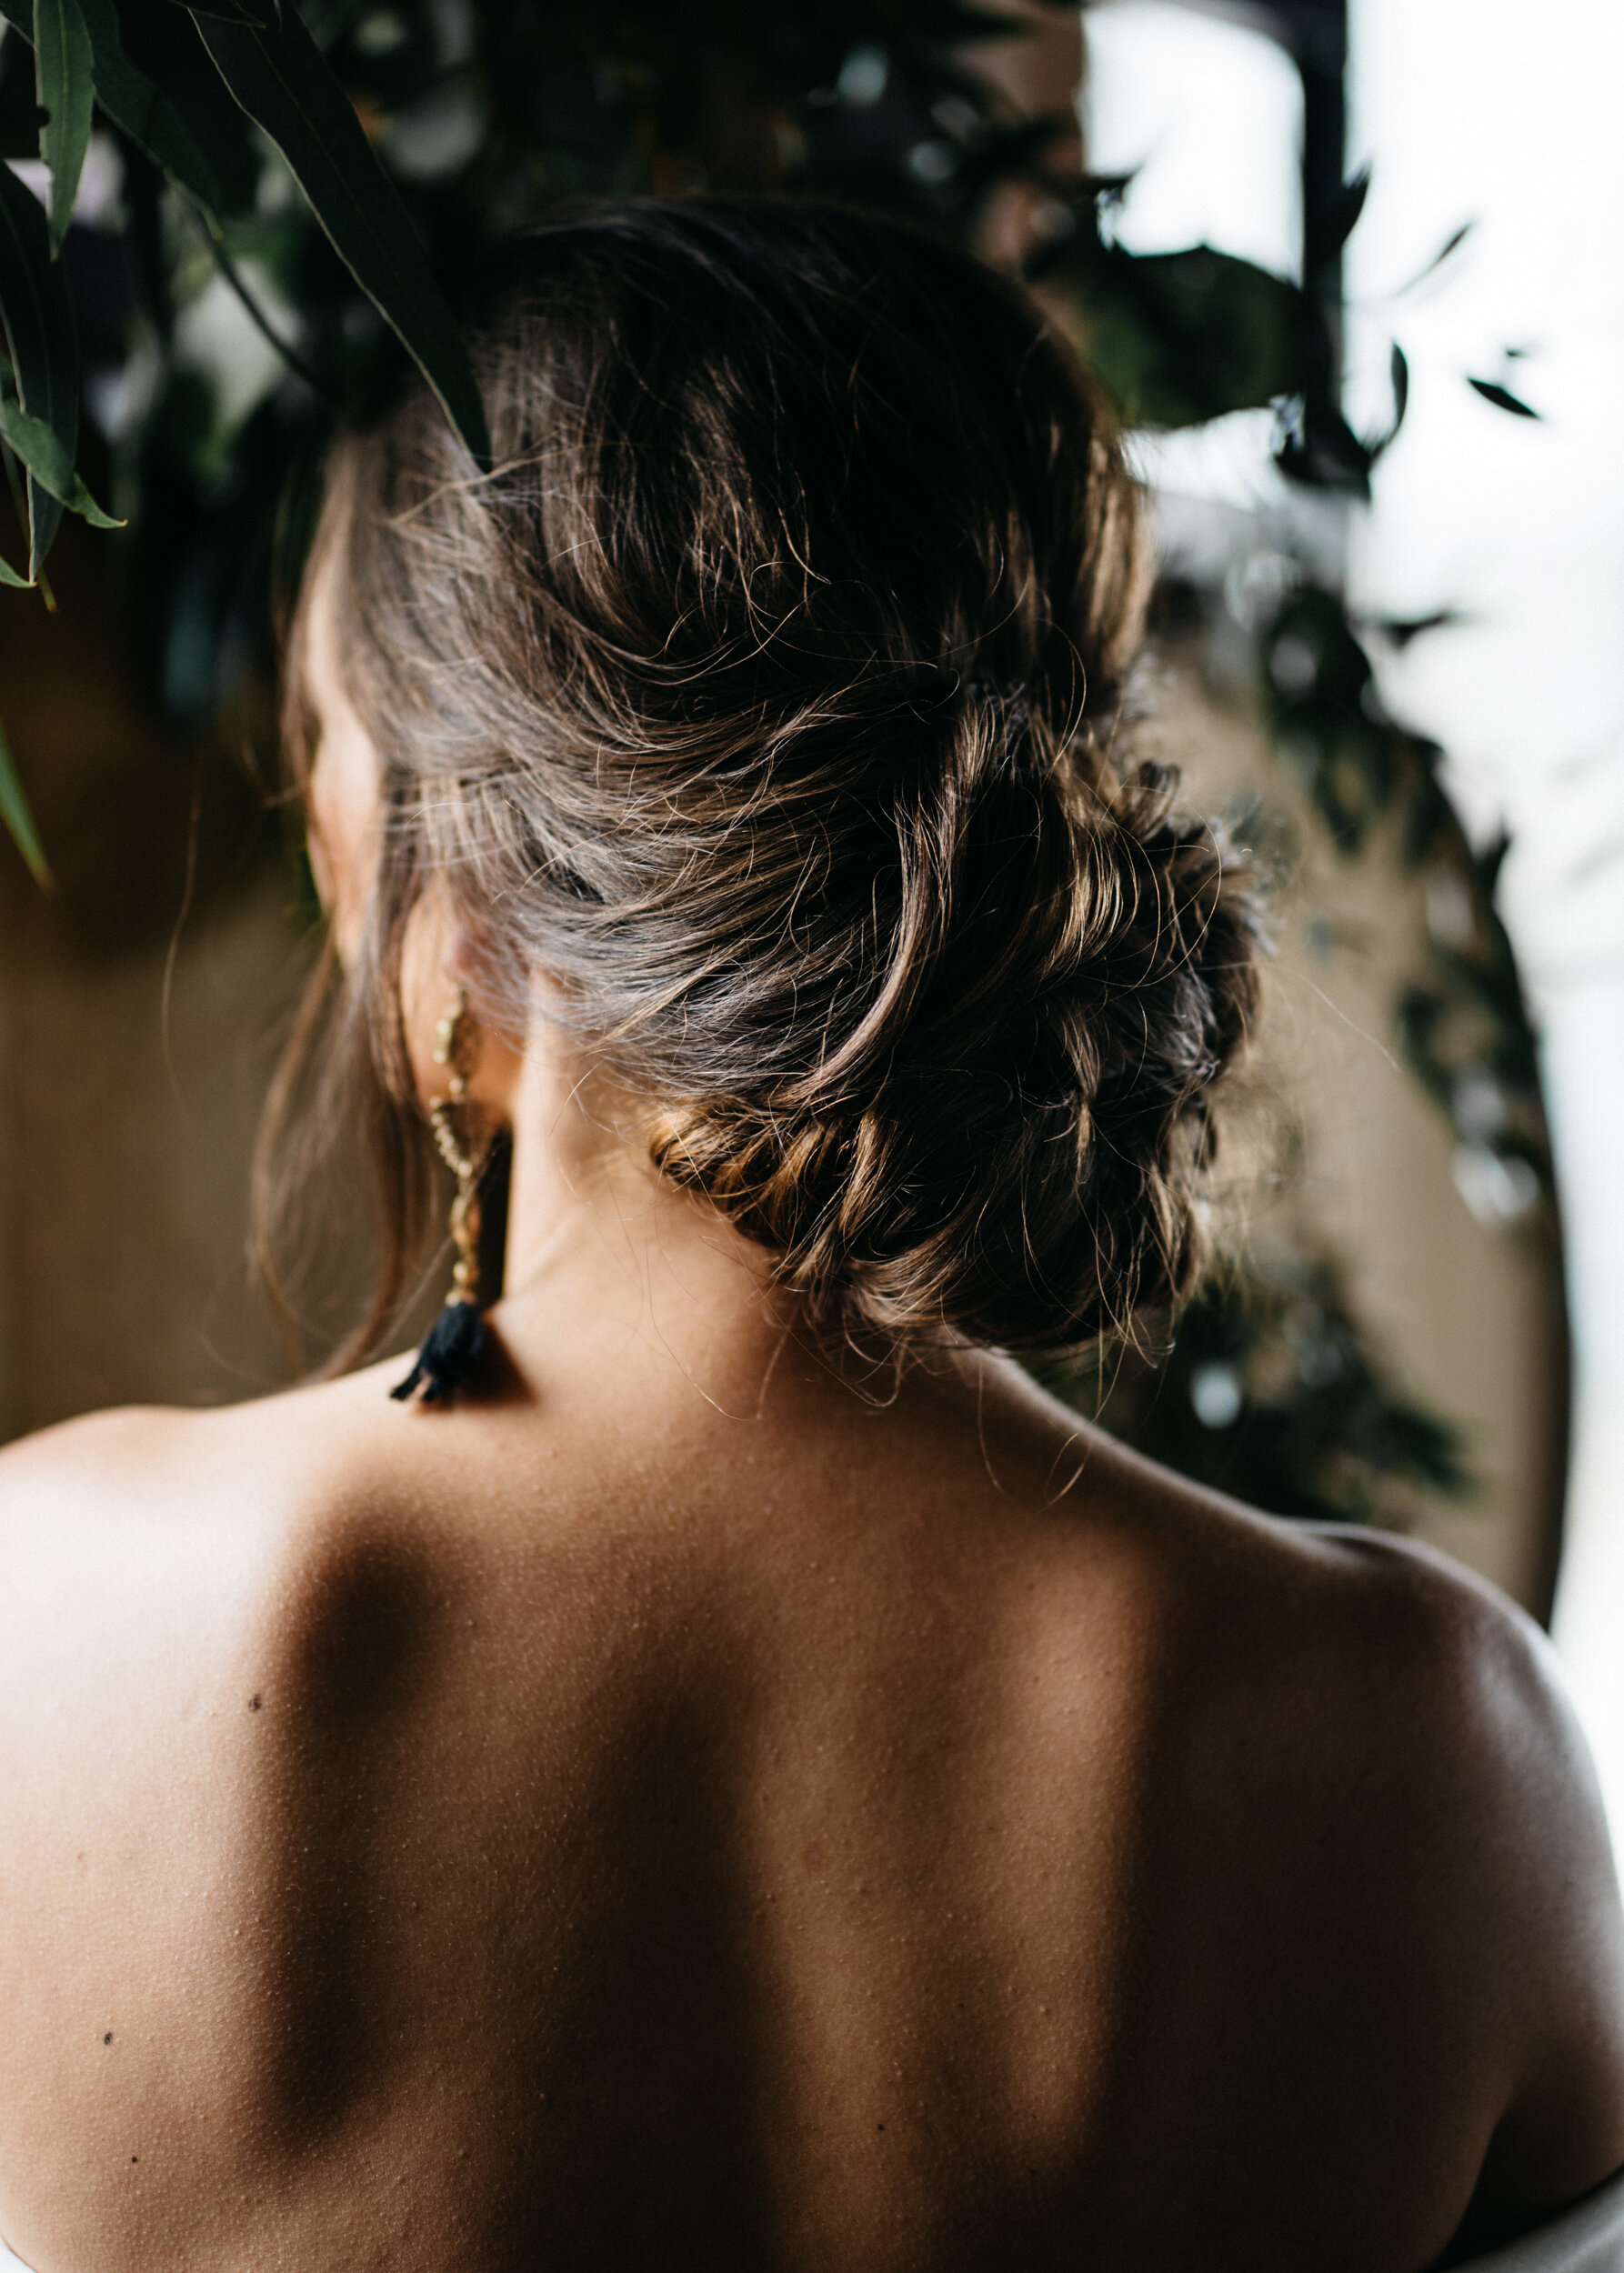 Long hair up-do by Leah Bailey at Missouri Spirts. Styled by creative wedding planner Unions With Celia. Photography by Sean Reid.